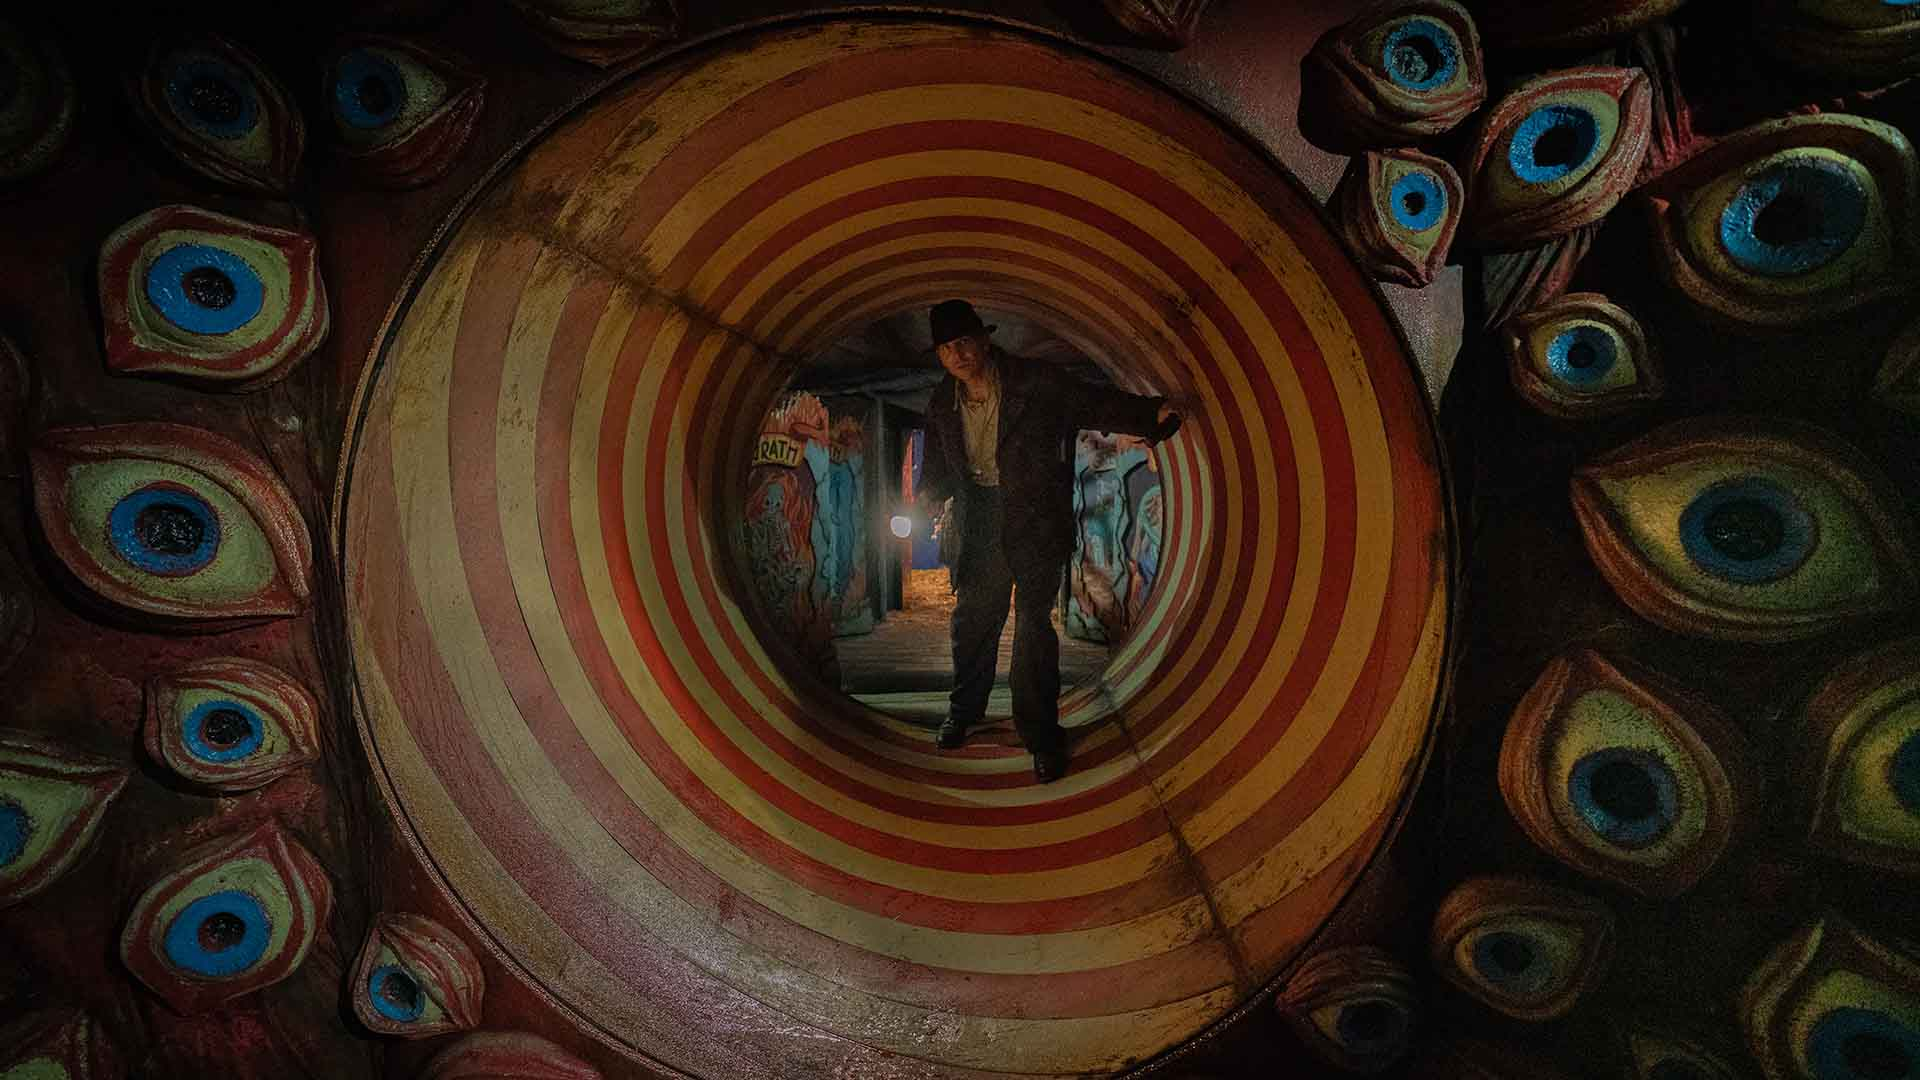 The First Trailer for Guillermo del Toro's 'Nightmare Alley' Spins Up Psychological Thrills in a Carnival